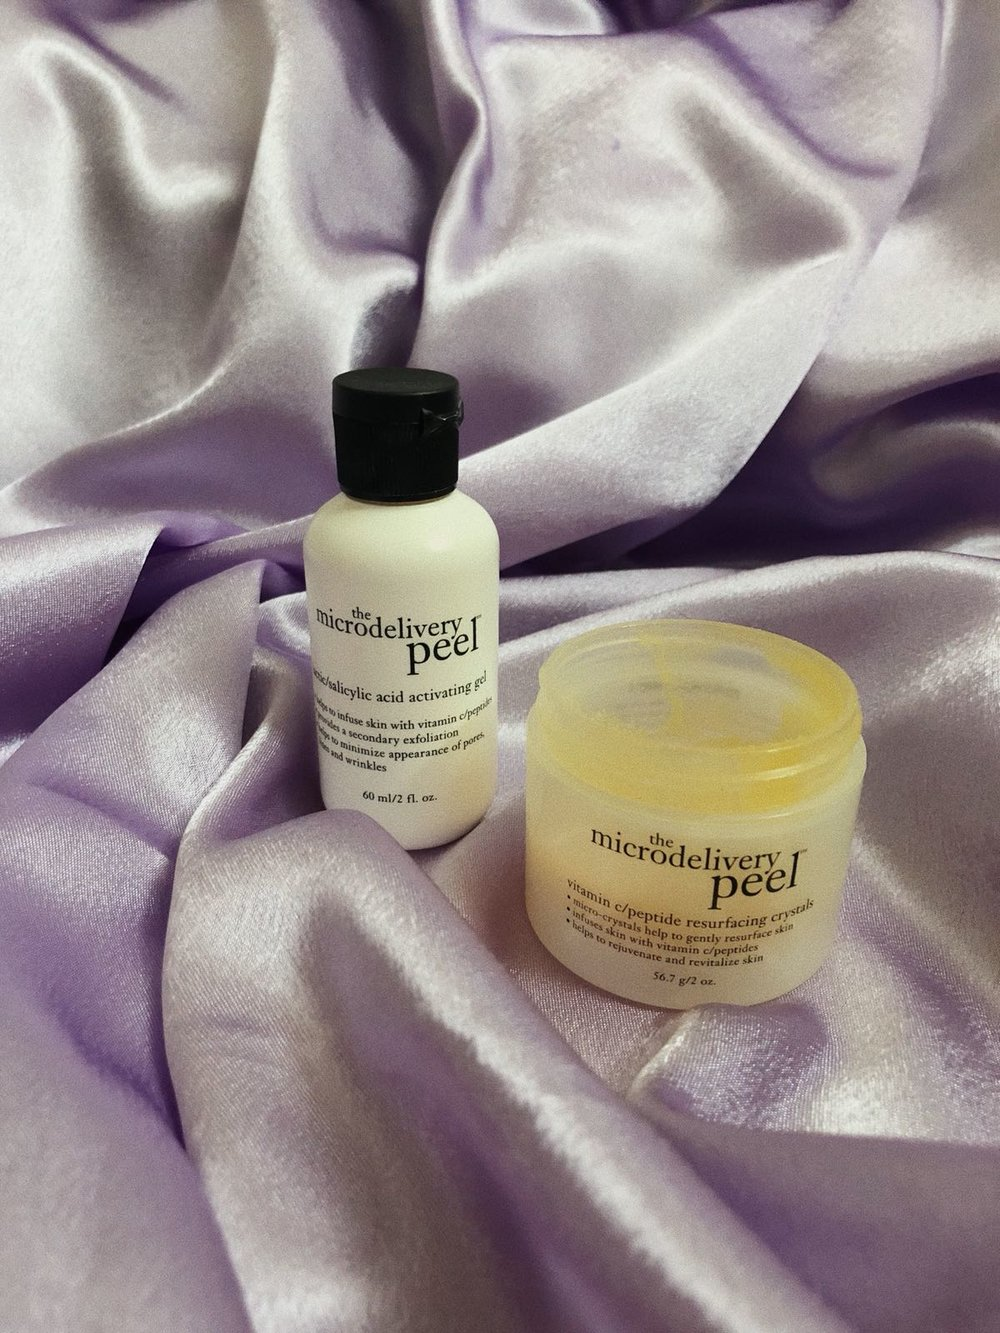 I GET SUPER DRY AND BAD SKIN VERY OFTEN THAT LOOKS EVEN FLAKY AT TIMES. SO I READ RAVING REVIEWS ABOUT THIS ONE: A TWO-STEP, IN-HOME PEEL THAT RESURFACES AND REJUVINATES SUN-DAMAGED, HYPERPIGMENTED AND AGING SKIN - THE   MIRCRODELIVERY PEEL   BY PHILOSOPHY. FIRST I WAS SO HESITANT AND CAREFUL TO TRY BUT THERE IS NOTHING YOU CAN DO WRONG. TAKE A TIMER WITH YOU IN THE BATHROOM AND YOU ARE FINE. -T